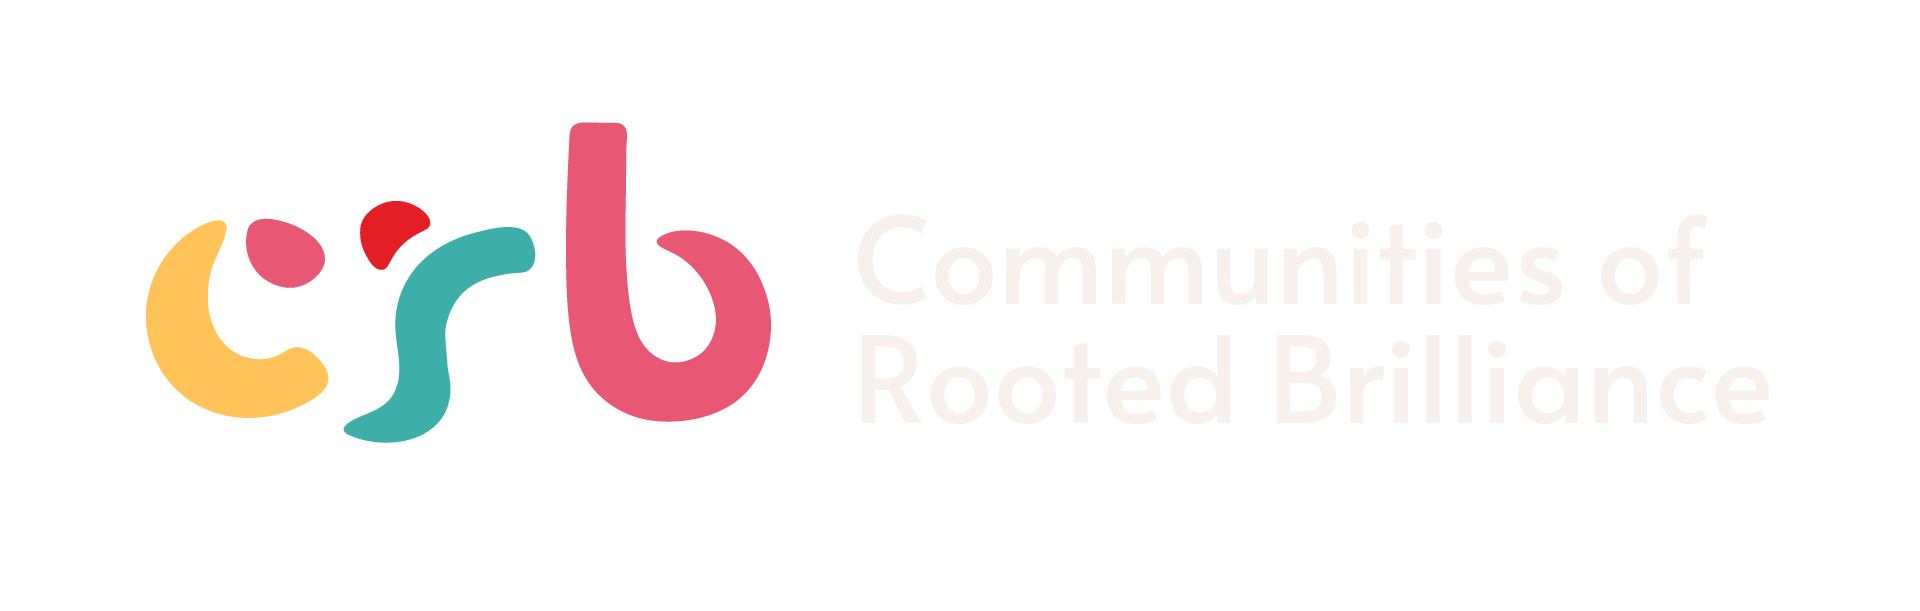 Communities of Rooted Brilliance